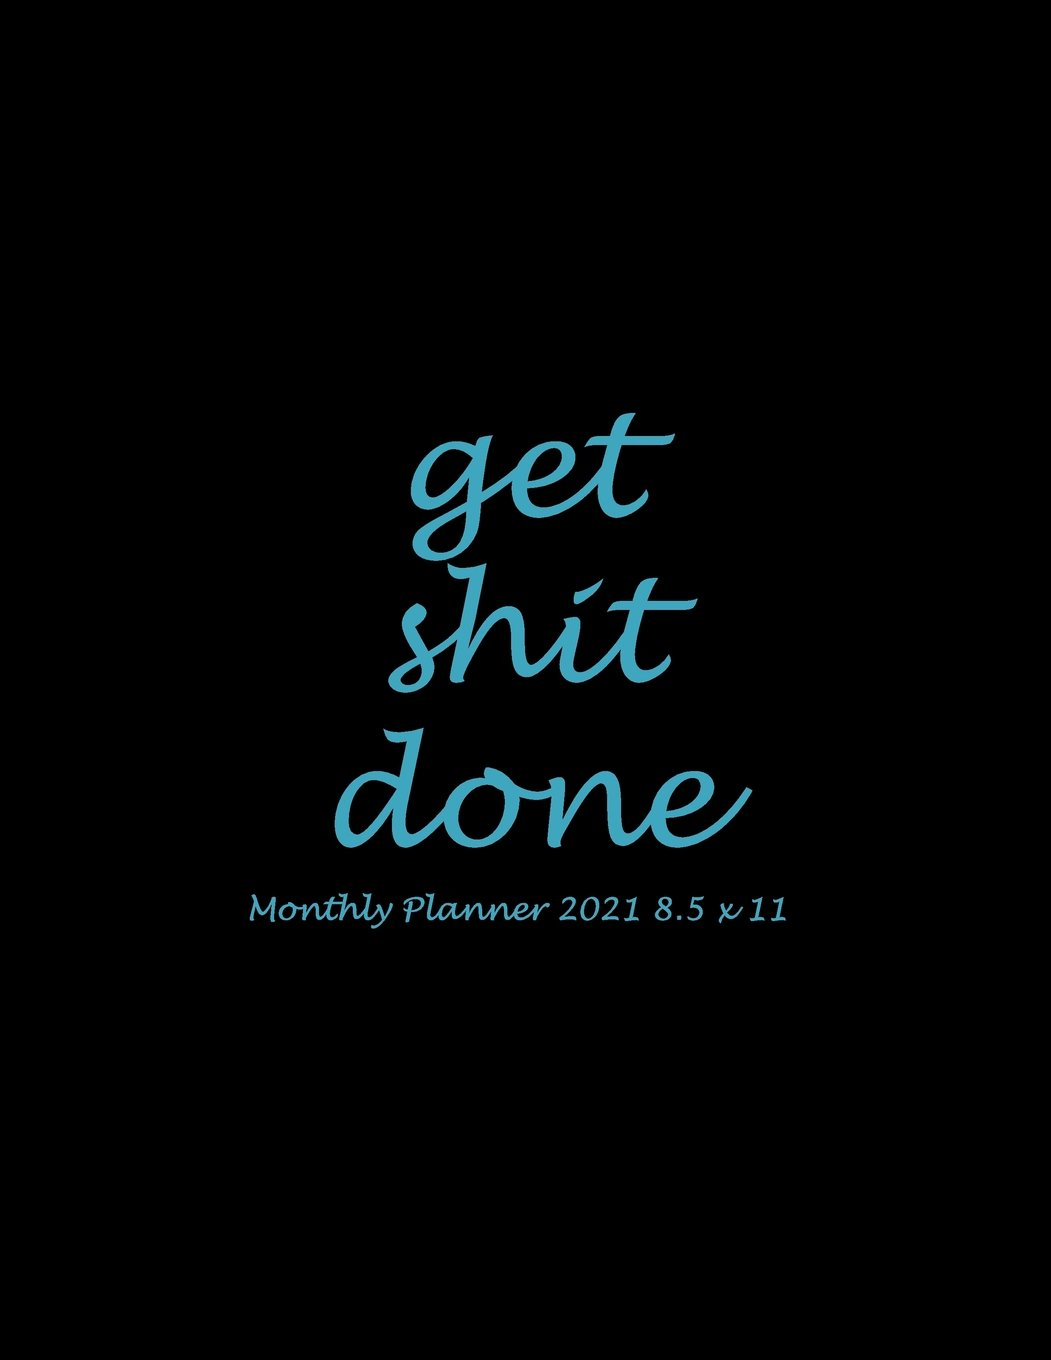 """Get Shit Done: Monthly Planner 2021 8.5 x 11: Beauty Black Blue, Monthly Calendar Book 2021, Weekly/Monthly/Yearly Calendar Journal, Large 8.5"""" x 11"""" ... Agenda Planner, Calendar Schedule Organizer pdf epub"""